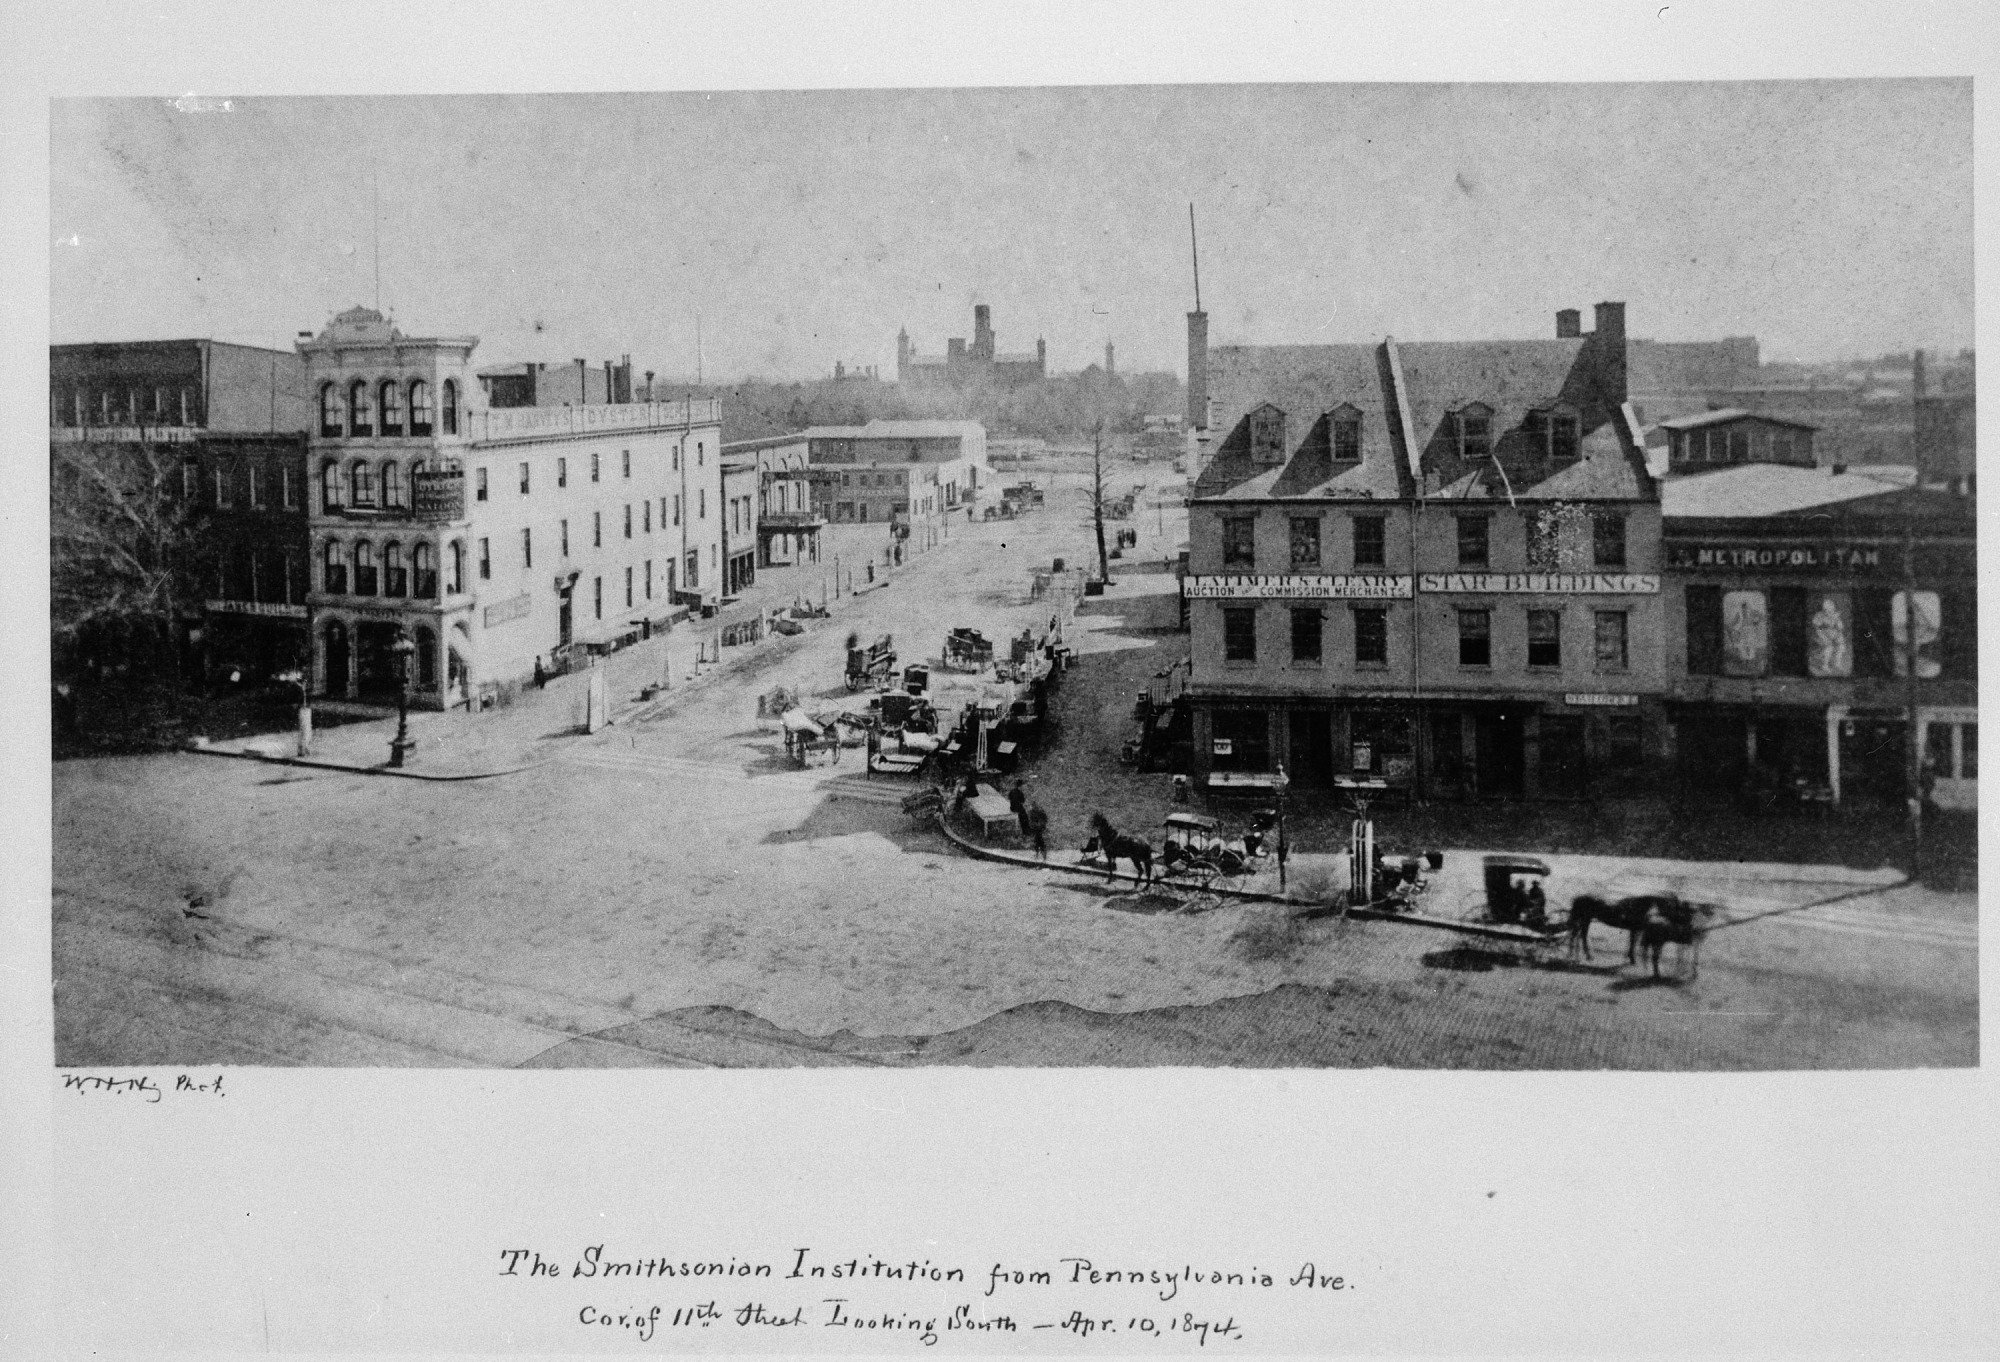 images for Smithsonian Institution Building from Pennsylvania Ave, 1874